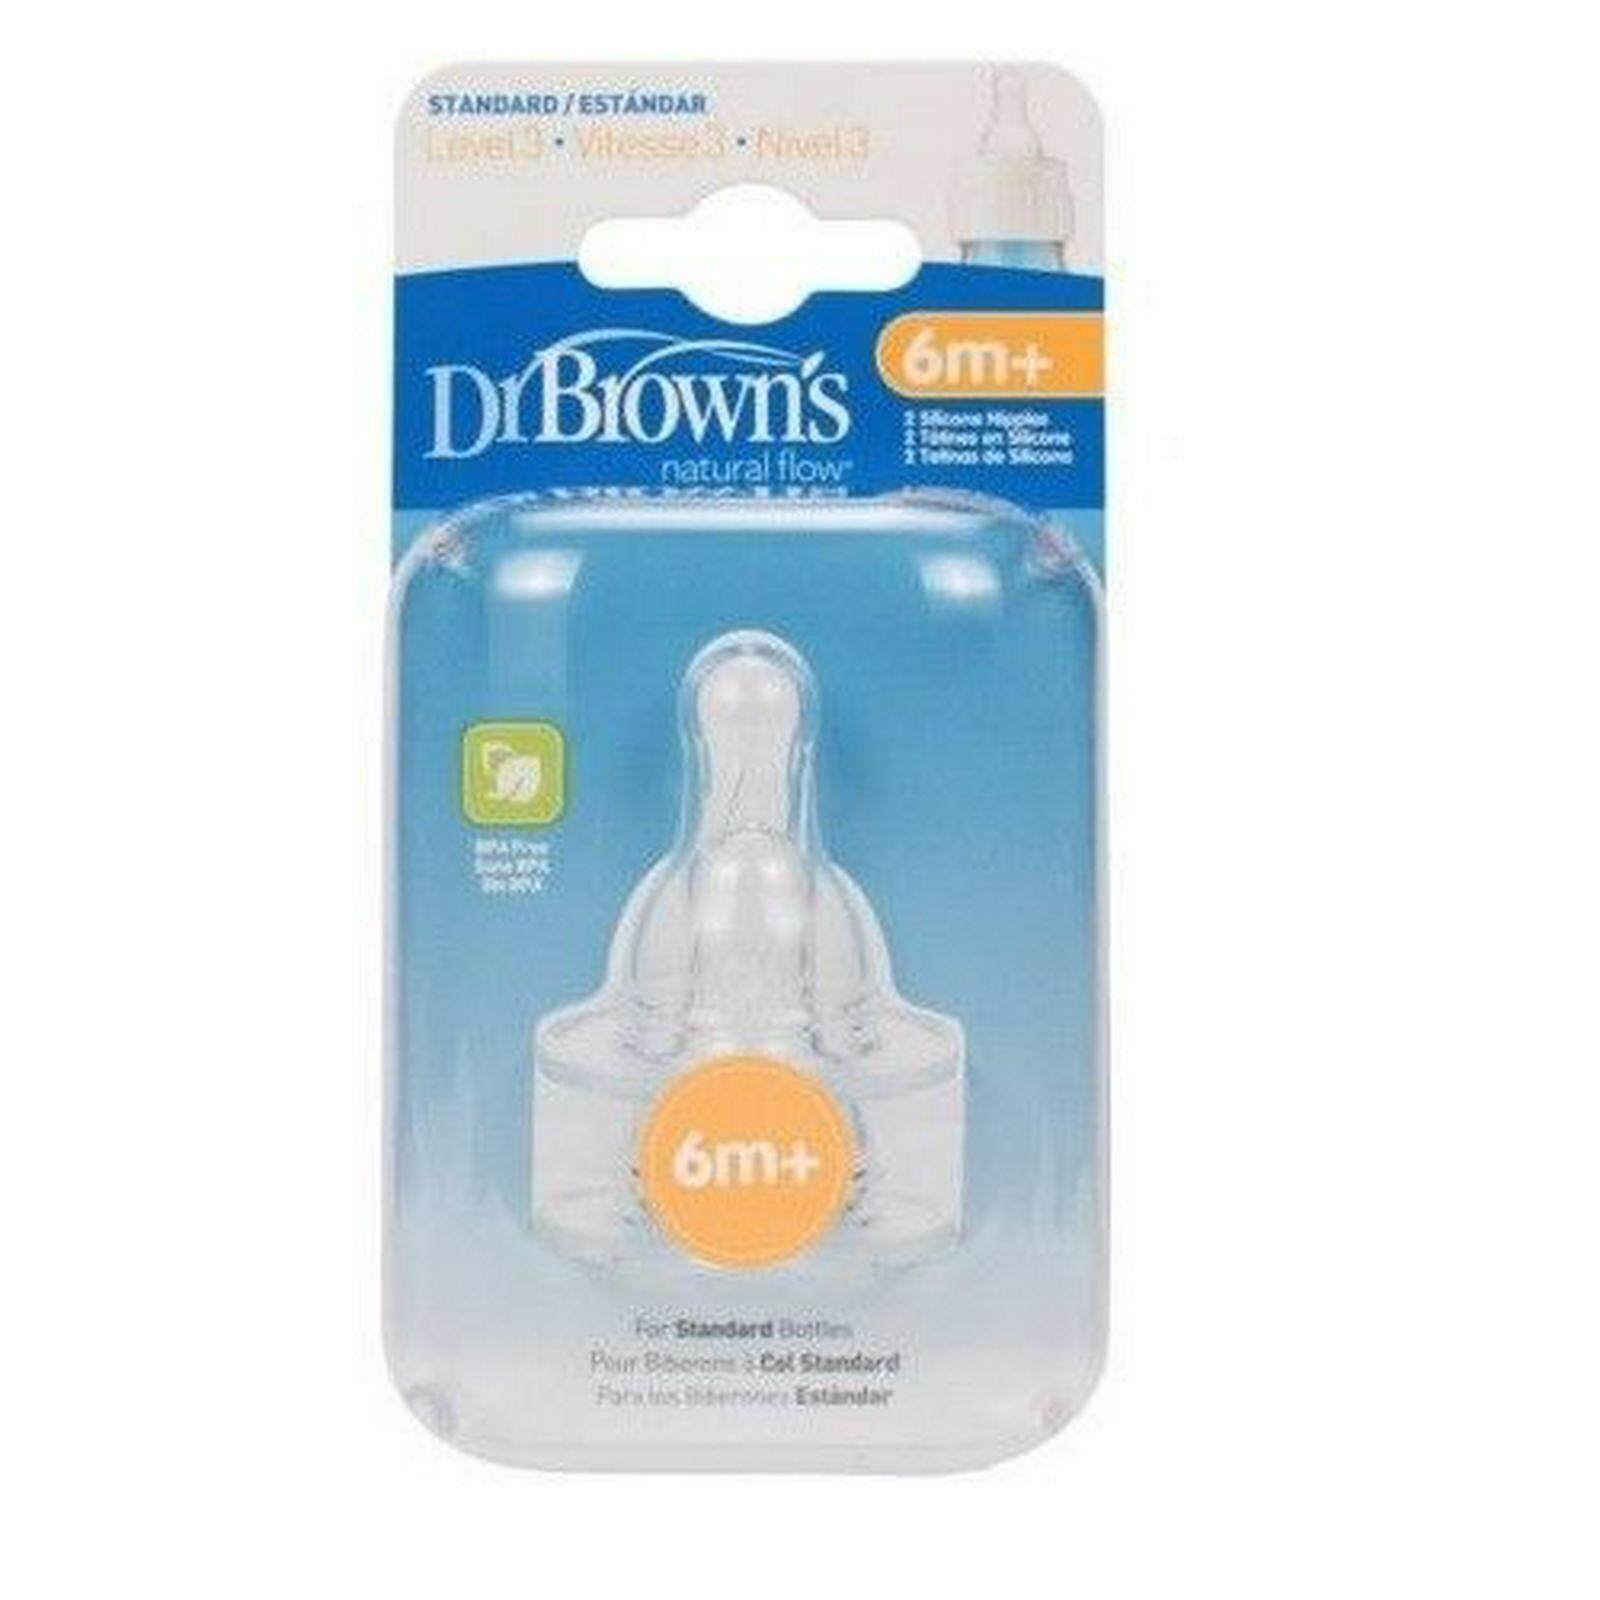 Sell Dr Browns Cheapest Best Quality My Store Drbrowns 5 Oz 150 Ml Pesu Wide Neck Options Baby Bottle 1 Pack Myr 25